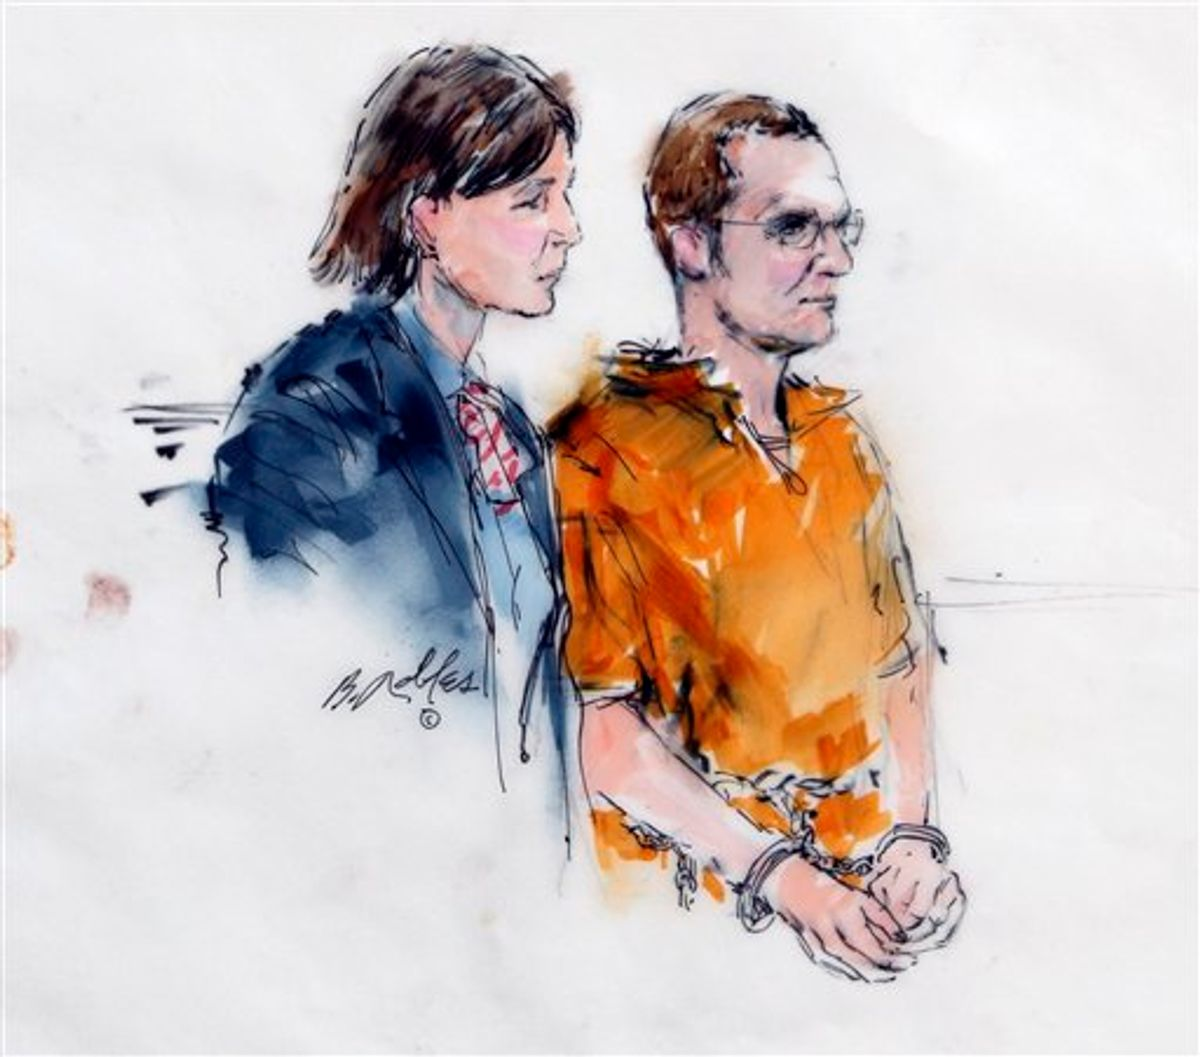 In this artist rendering, Jared Lee Loughner, right, makes a court appearance with his lawyer, Judy Clarke, at the Sandra Day O'Connor United States Courthouse in Phoenix, Ariz., Monday, Jan. 24, 2011. Loughner pled not guilty to charges he tried to kill U.S. Rep. Gabrielle Giffords, D-Ariz, in a shooting rampage that left six people dead. (AP Photo/Bill Robles)   (AP)